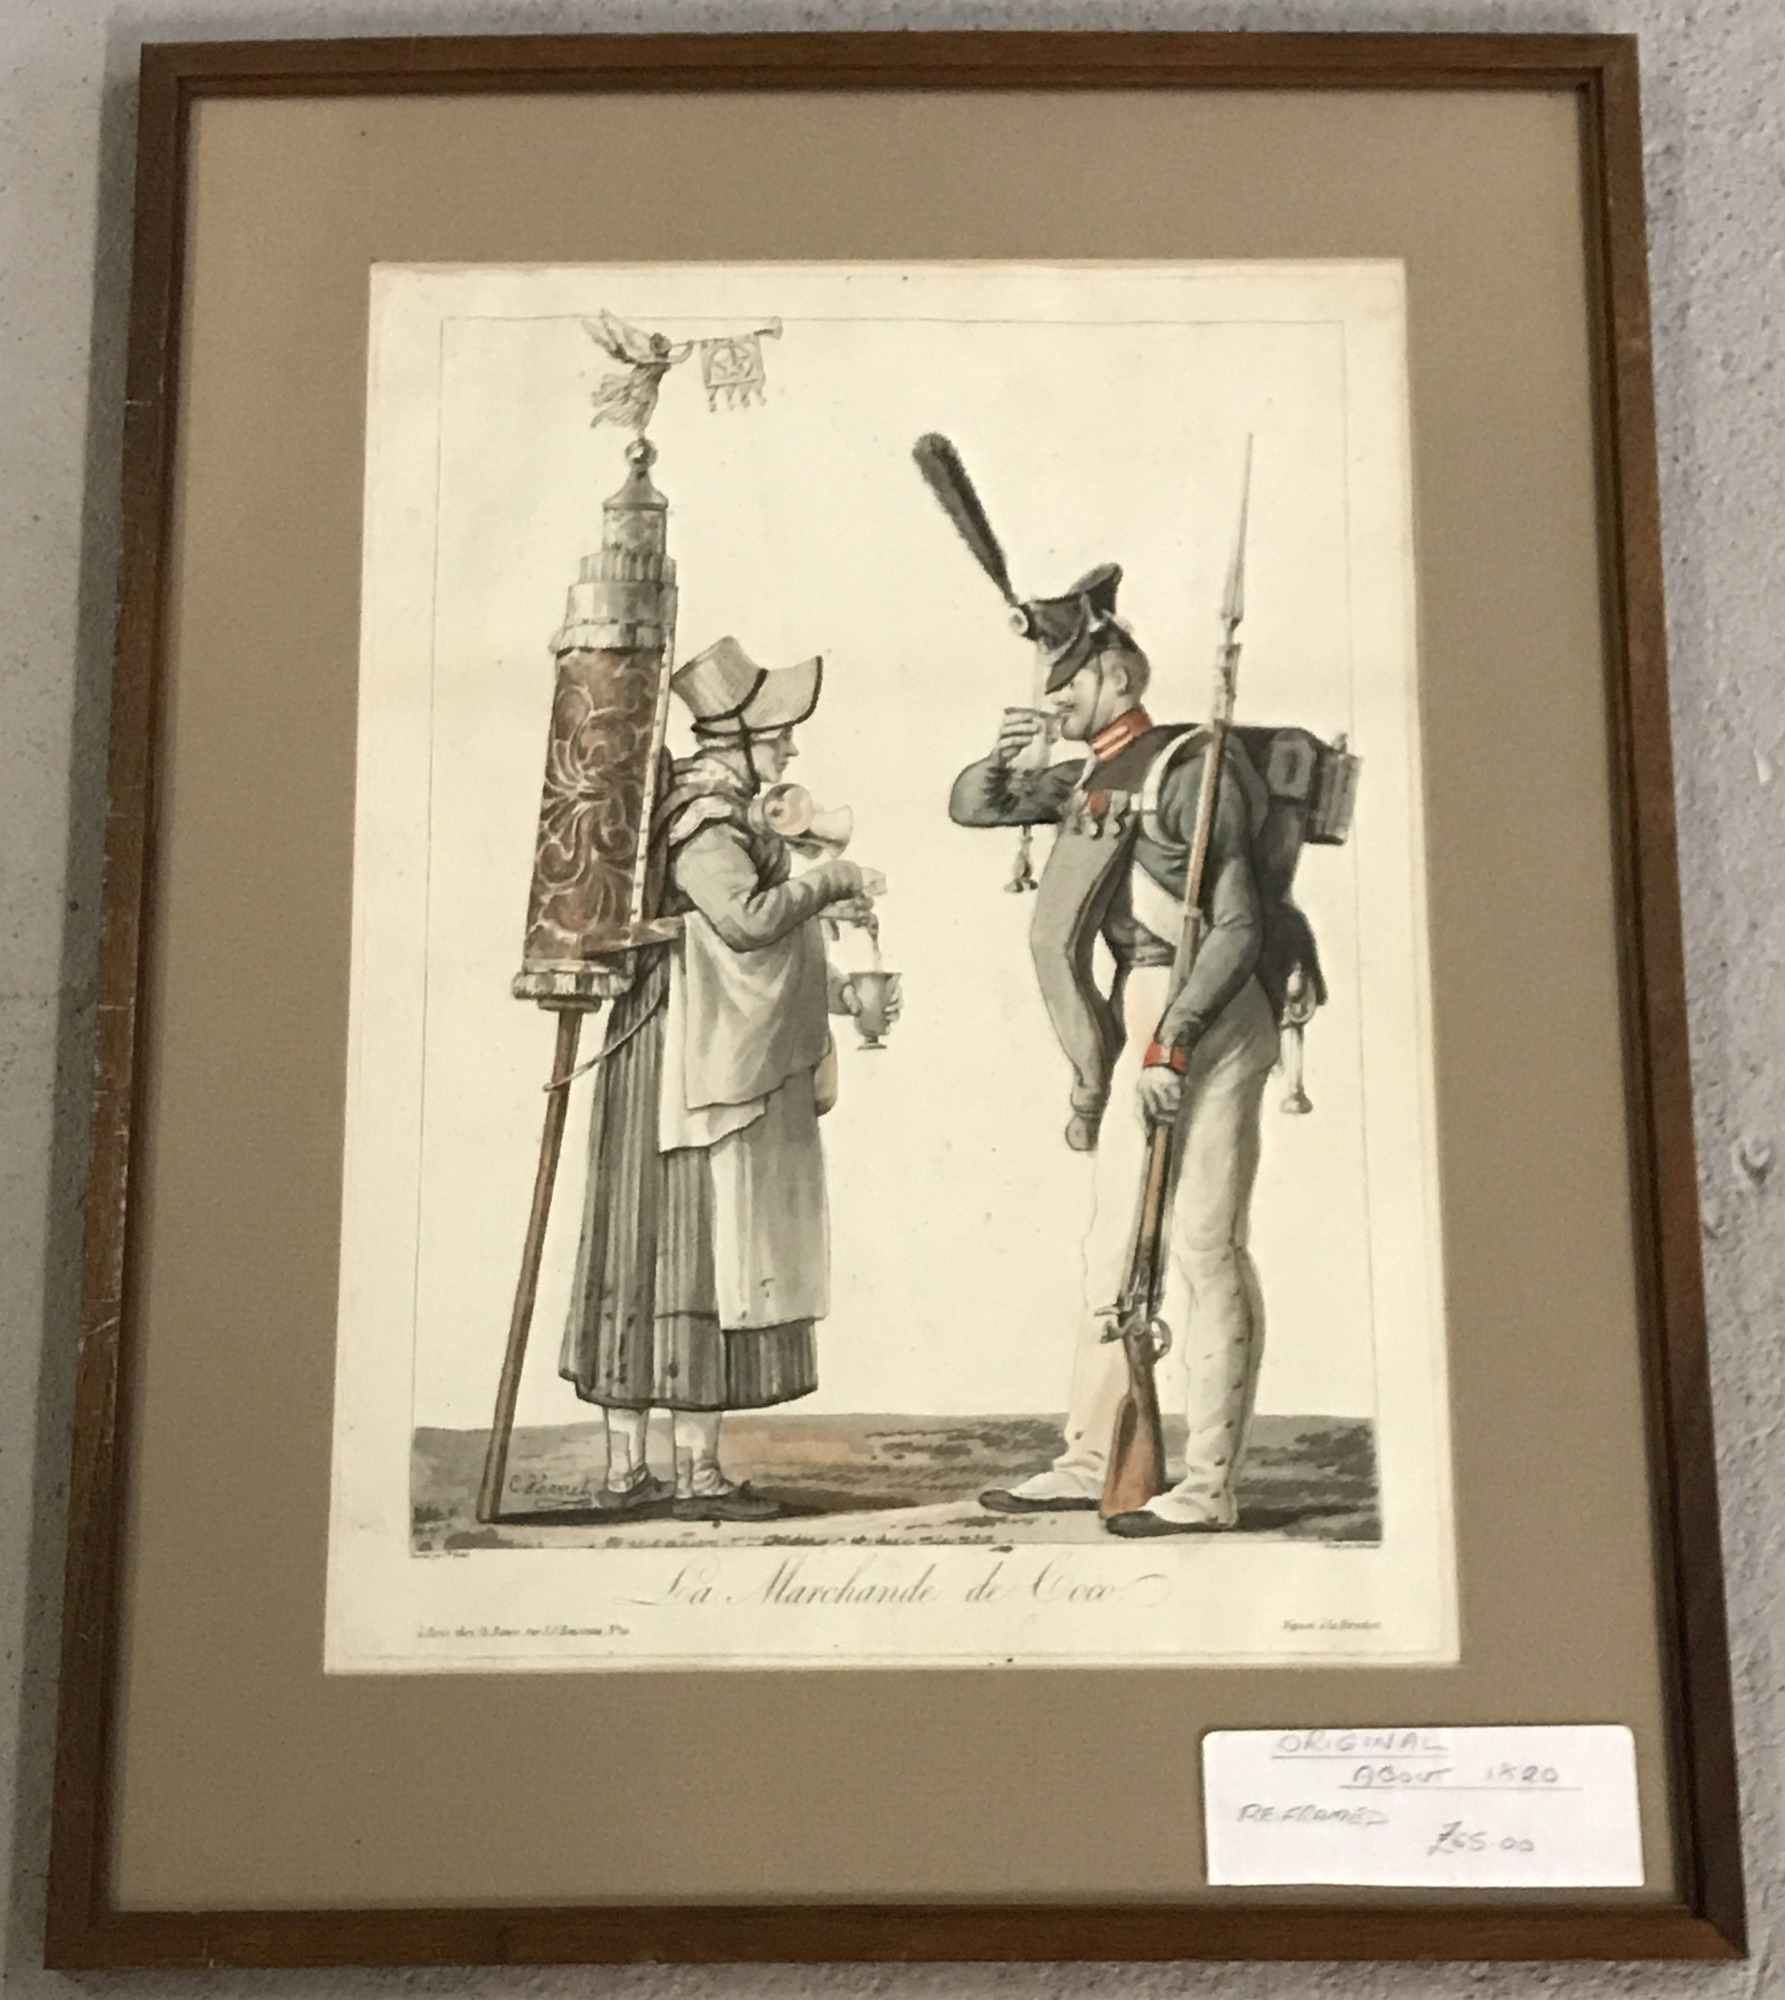 Lot 127 - A framed and glazed engraving of a Chocolate seller and a soldier.